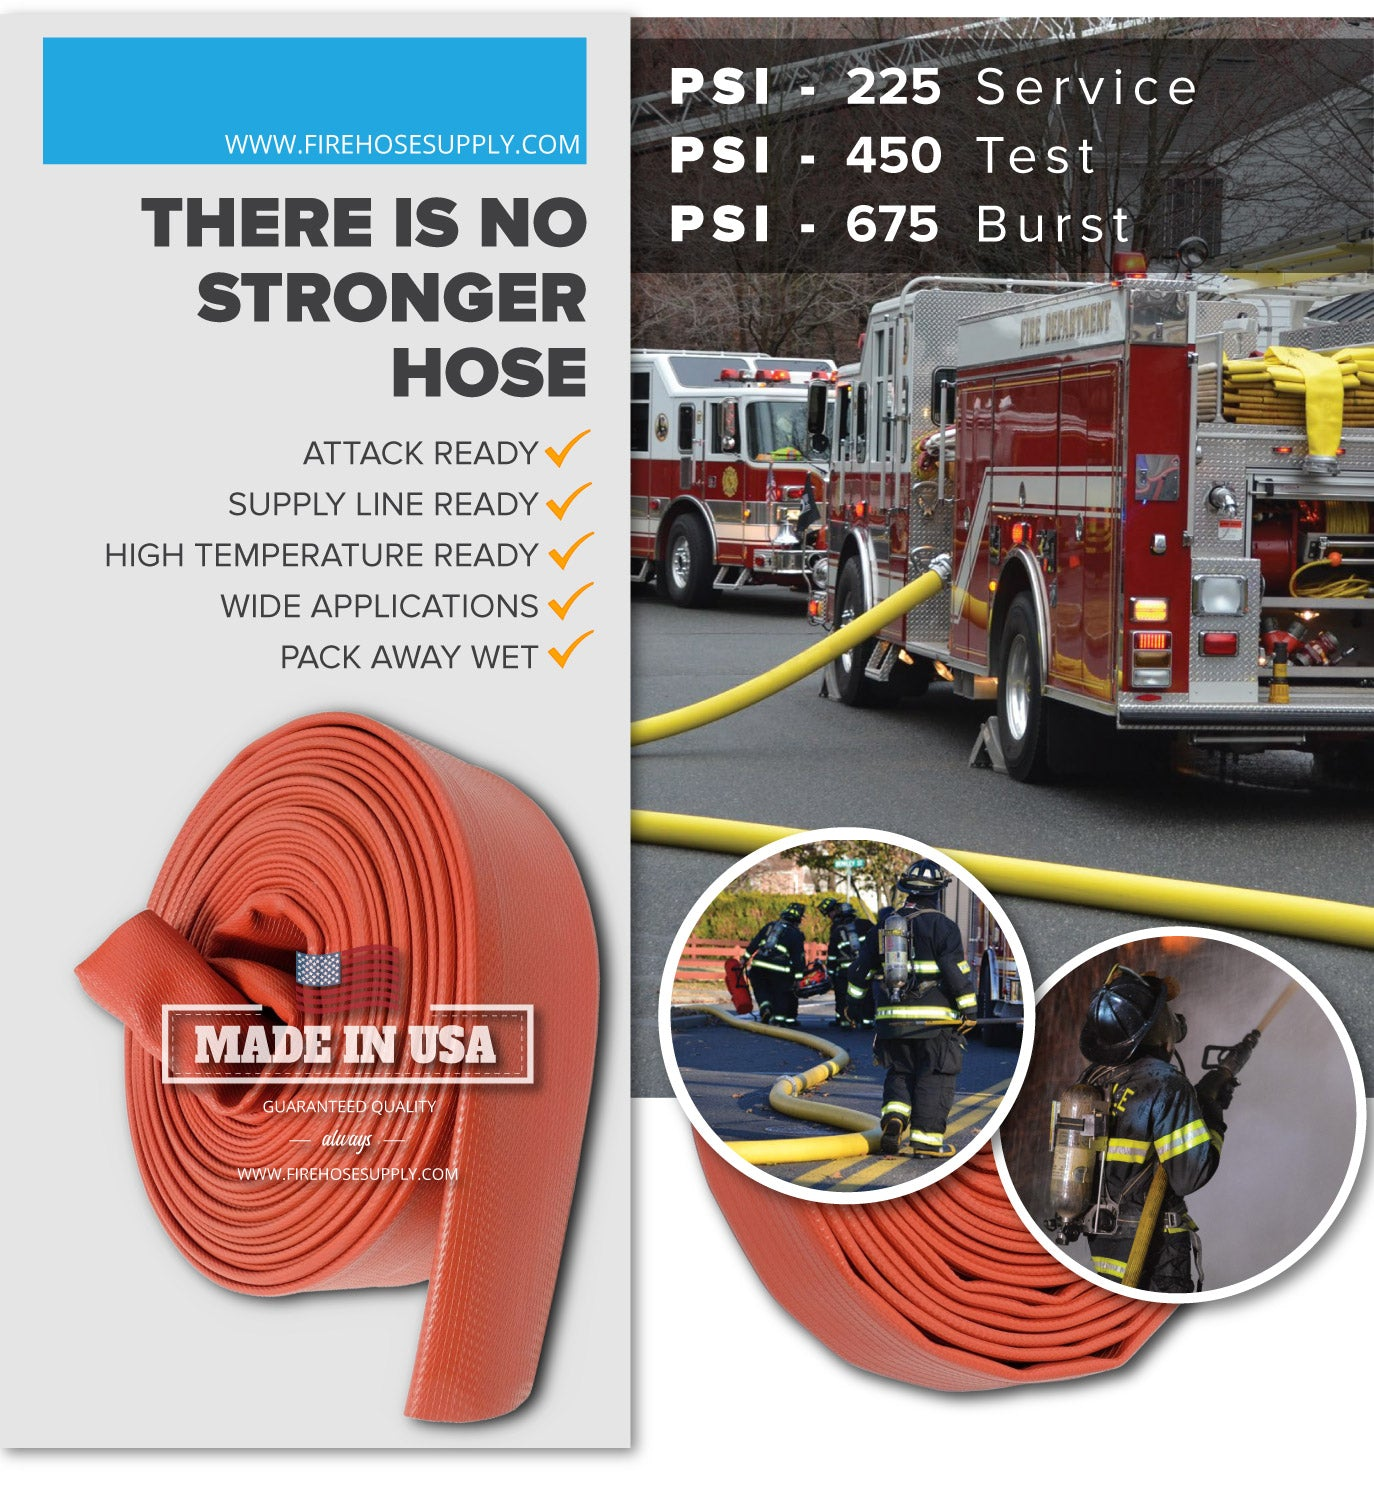 5 Inch Rubber Fire Hose Material Only Supply And Attack Ready Firefighter Red 675 PSI Test